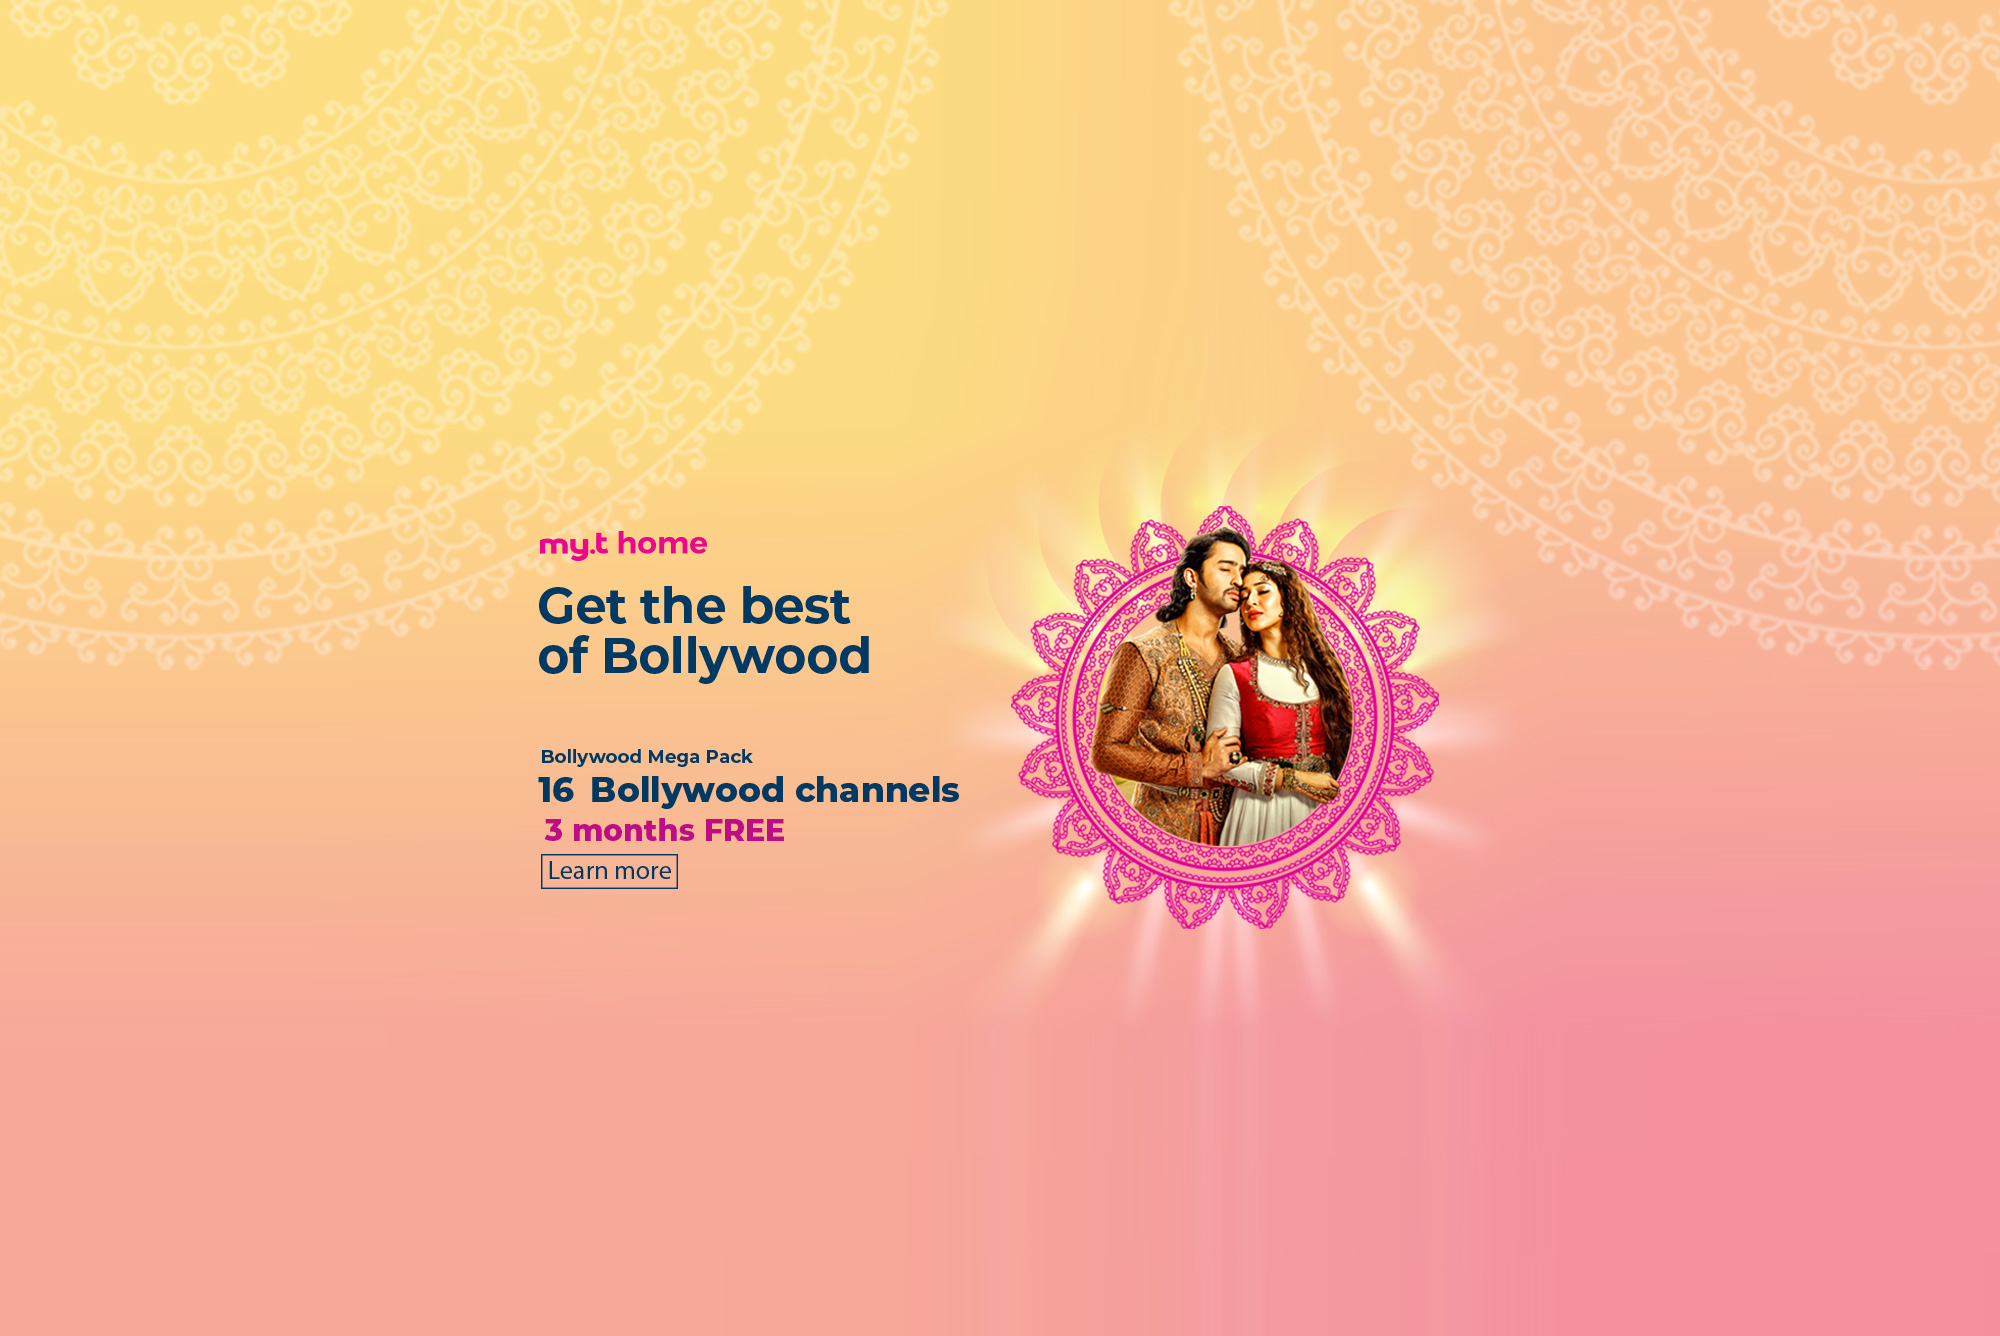 Bollywood mega pack promo